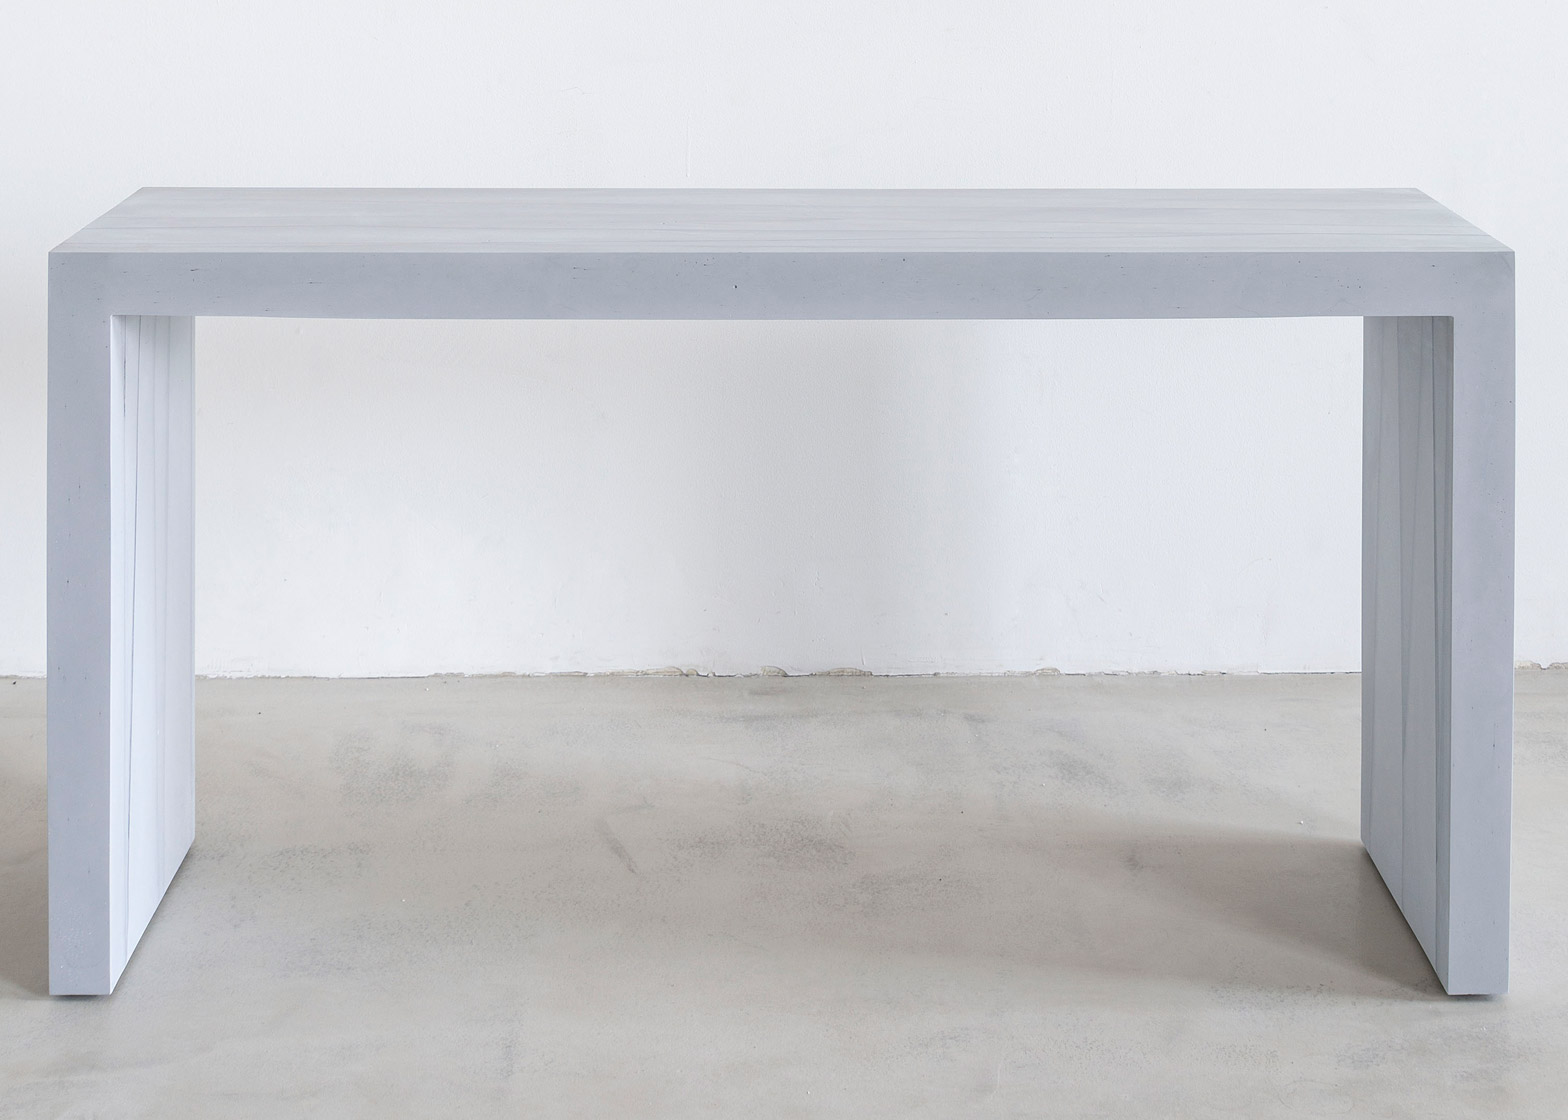 cement furniture. 2 Of 5; The Fade Series Sculptural Furniture By Mastrangelo\u0027s MMaterial Collection Shown At New York Design Week Cement O